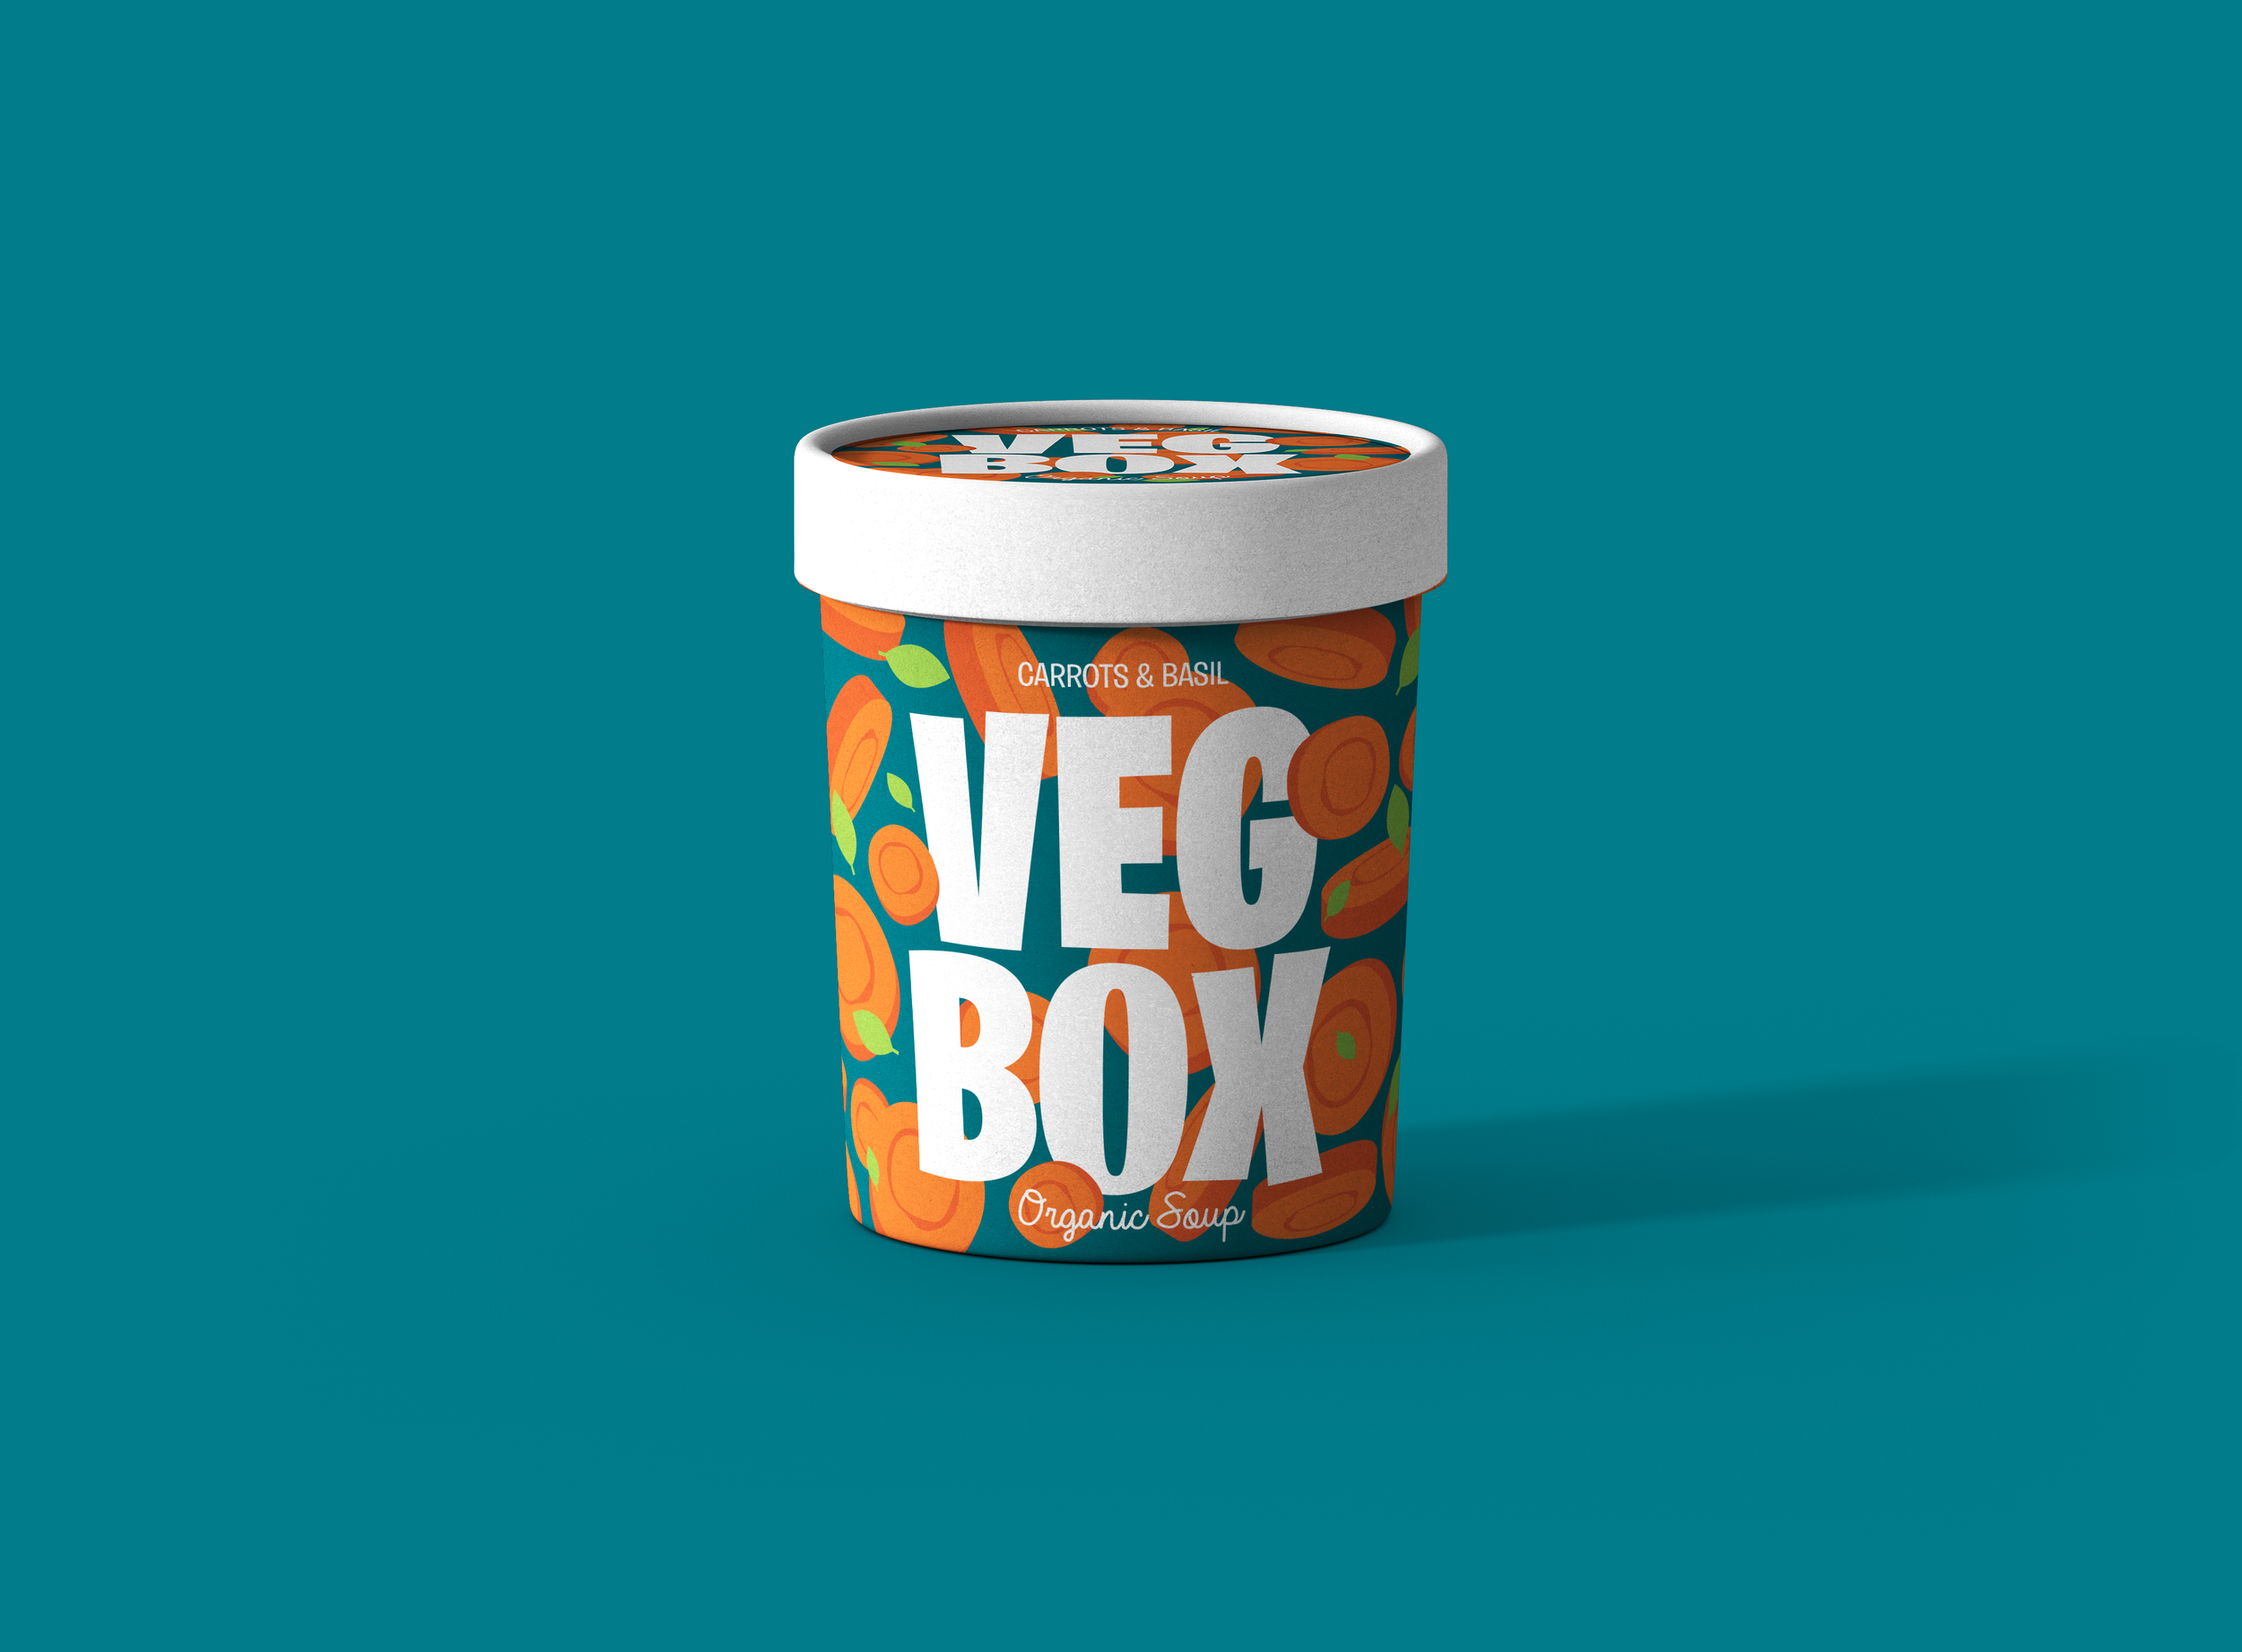 Veg Box Packaging Design for an Independent Organic Soup Brand Made in Italy